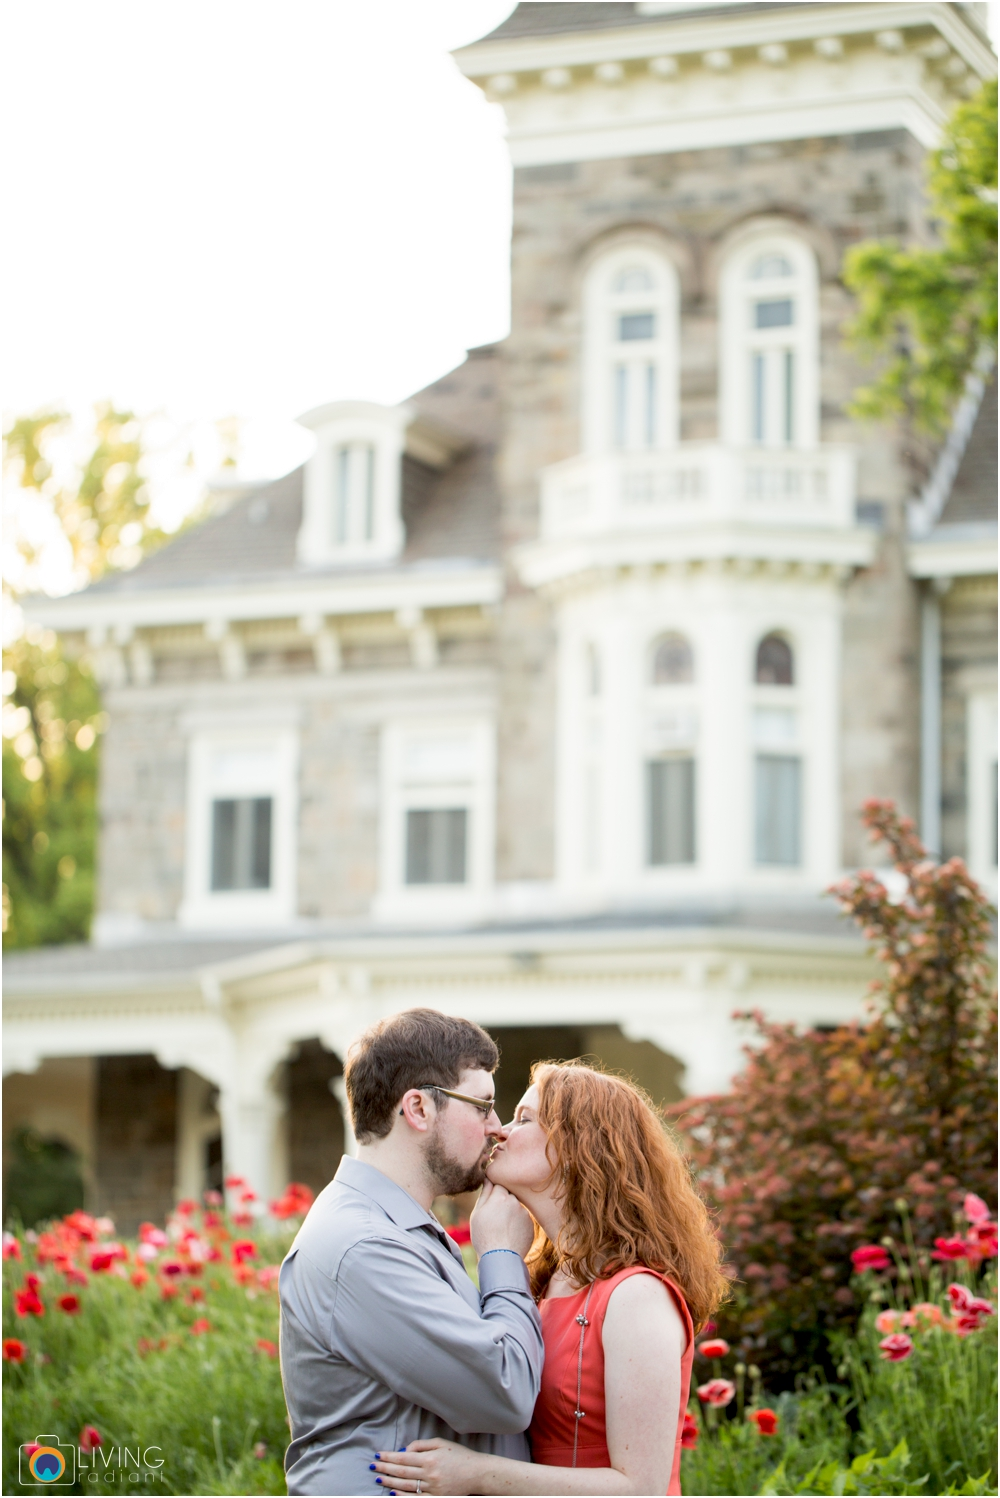 miriam-michael-engaged-clyburn-arboretum-engagement-session-baltimore-outdoor-flowers-living-radiant-photography-maggie-patrick-nolan_0039.jpg